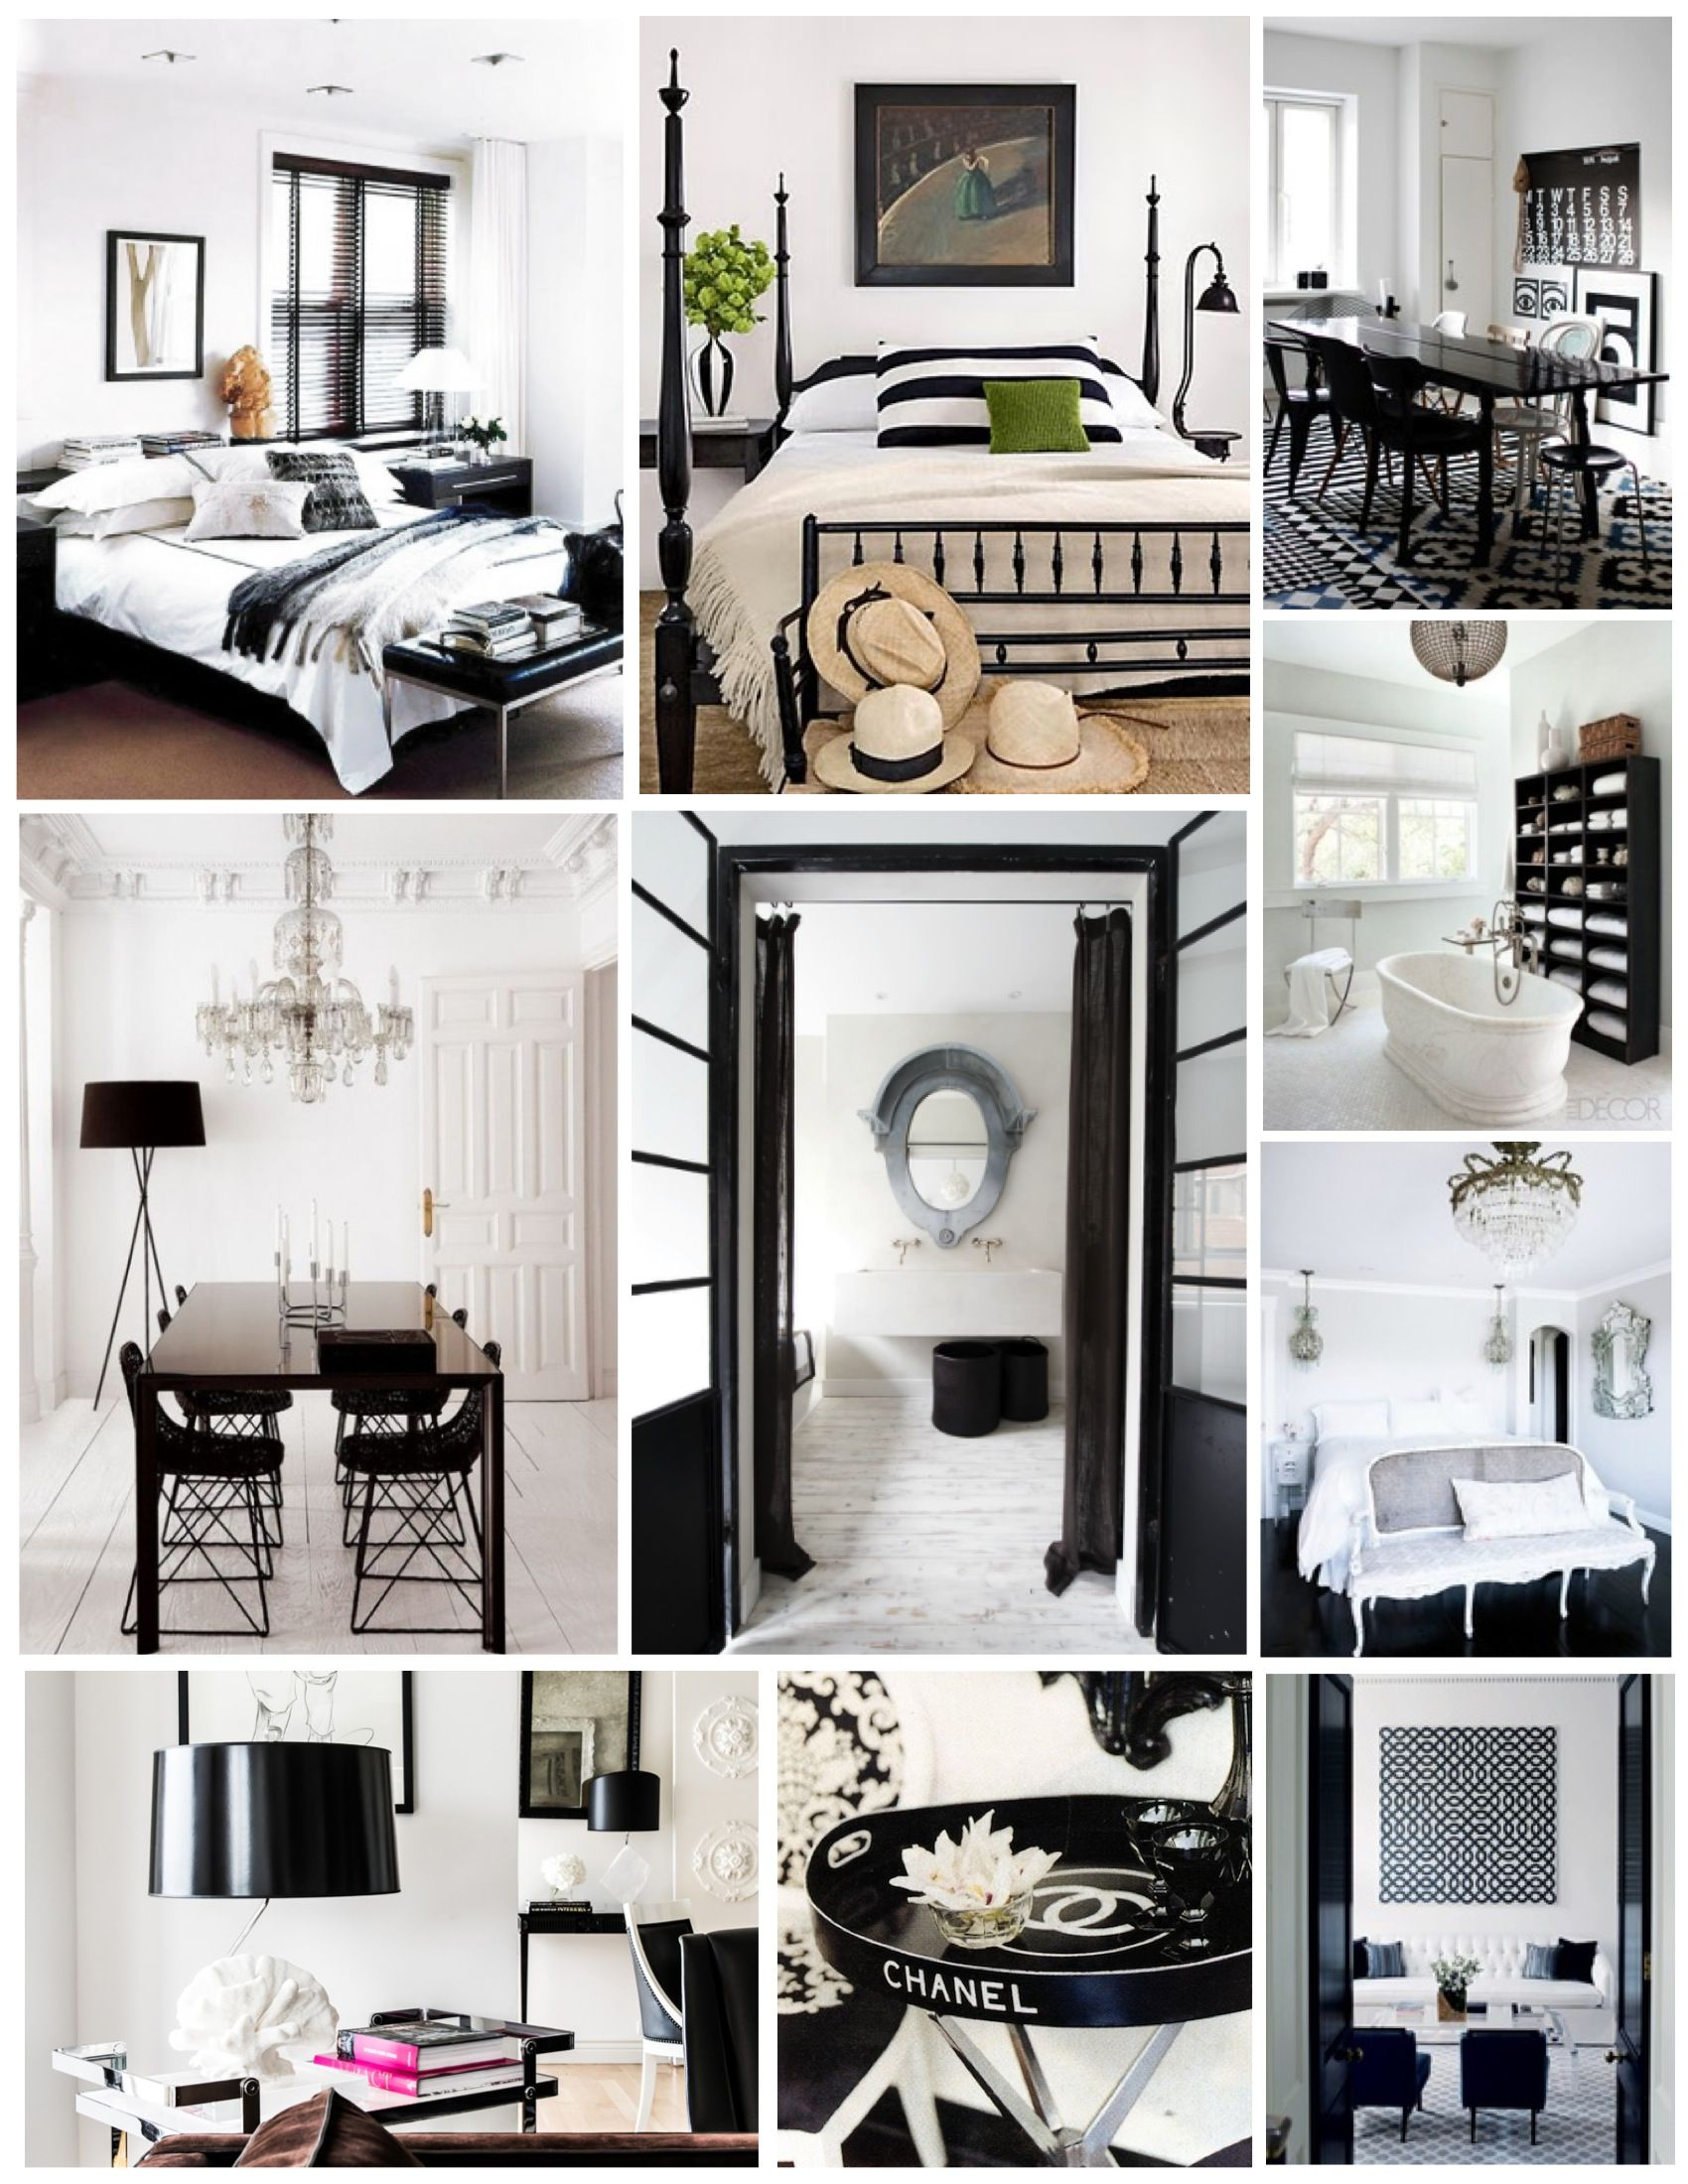 Room Inspiring black and white living spaces image